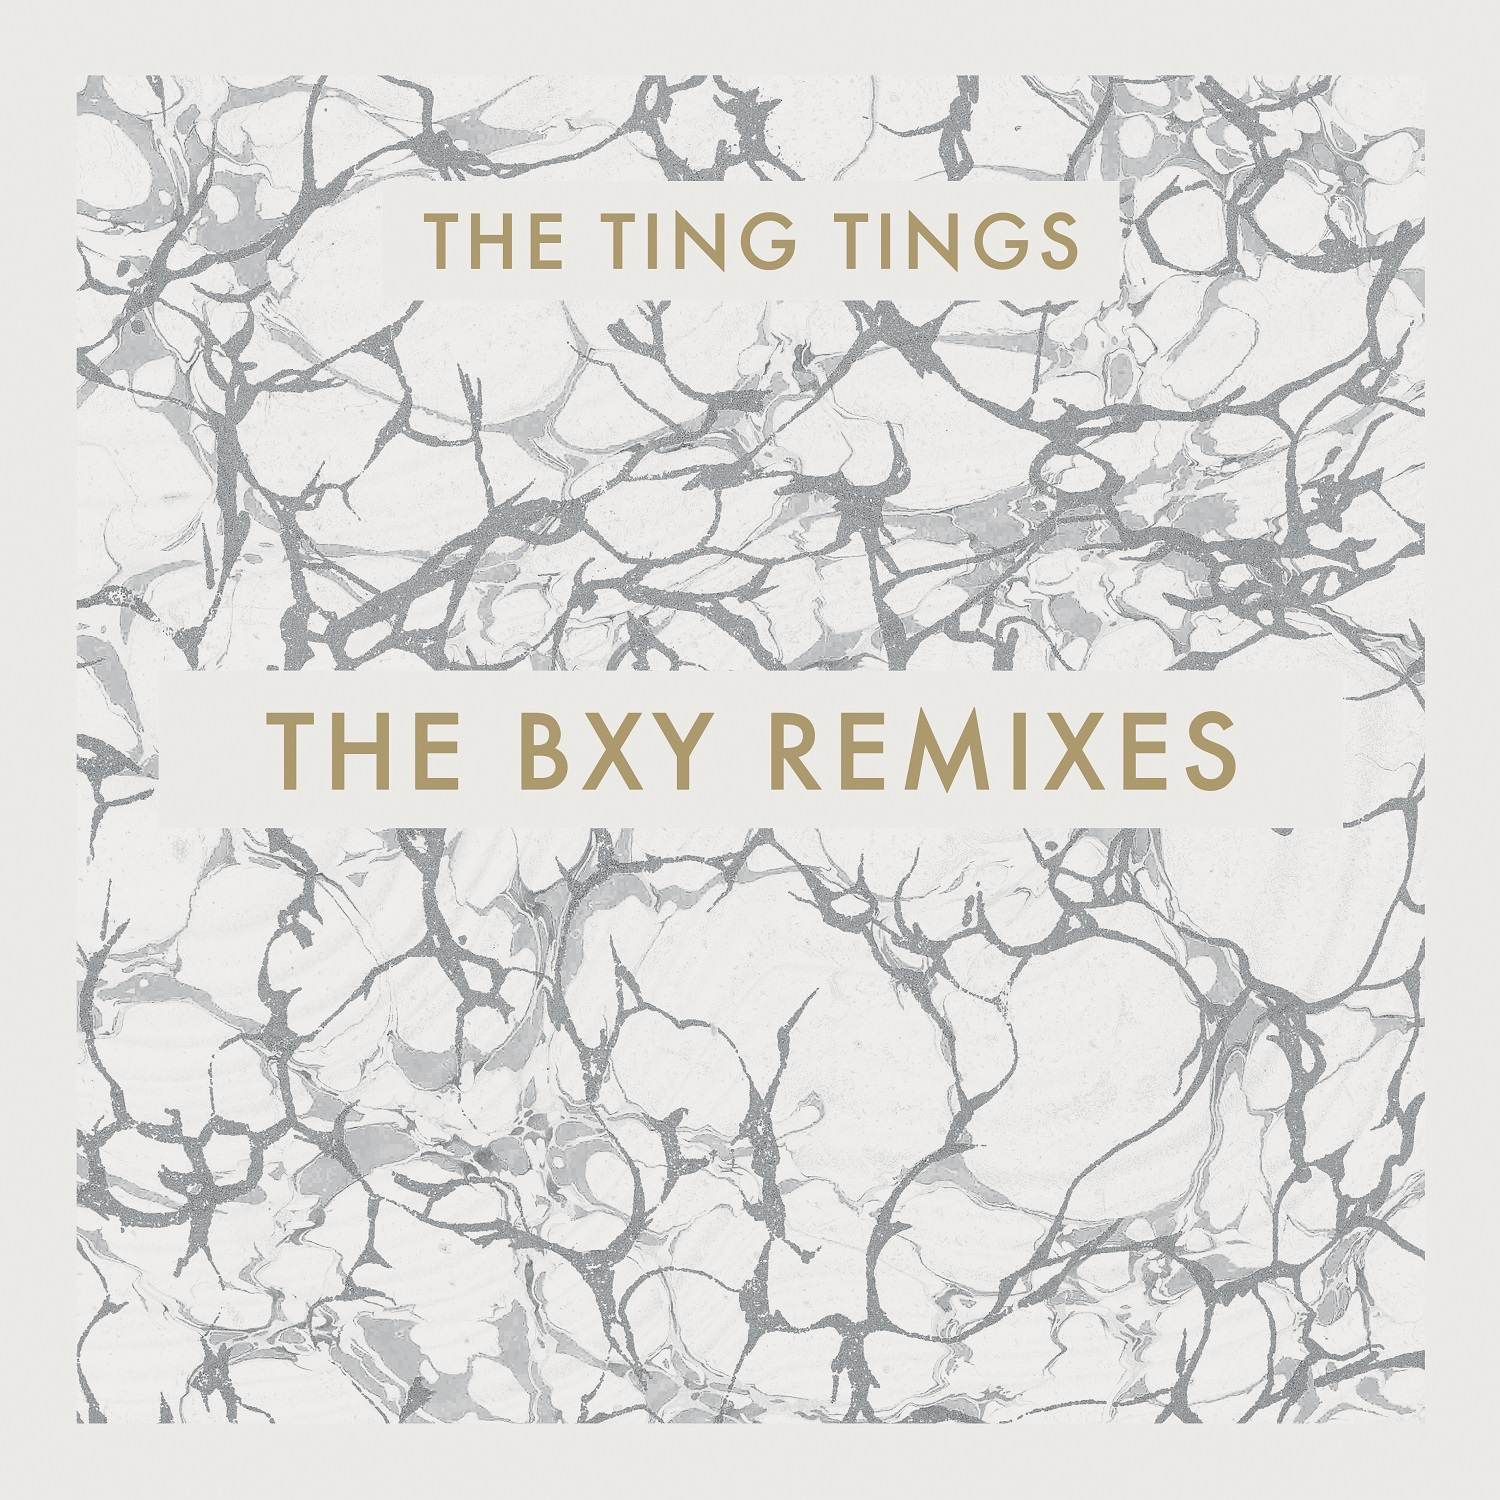 Ting Tings/BXY REMIXES (LTD 250) 12""